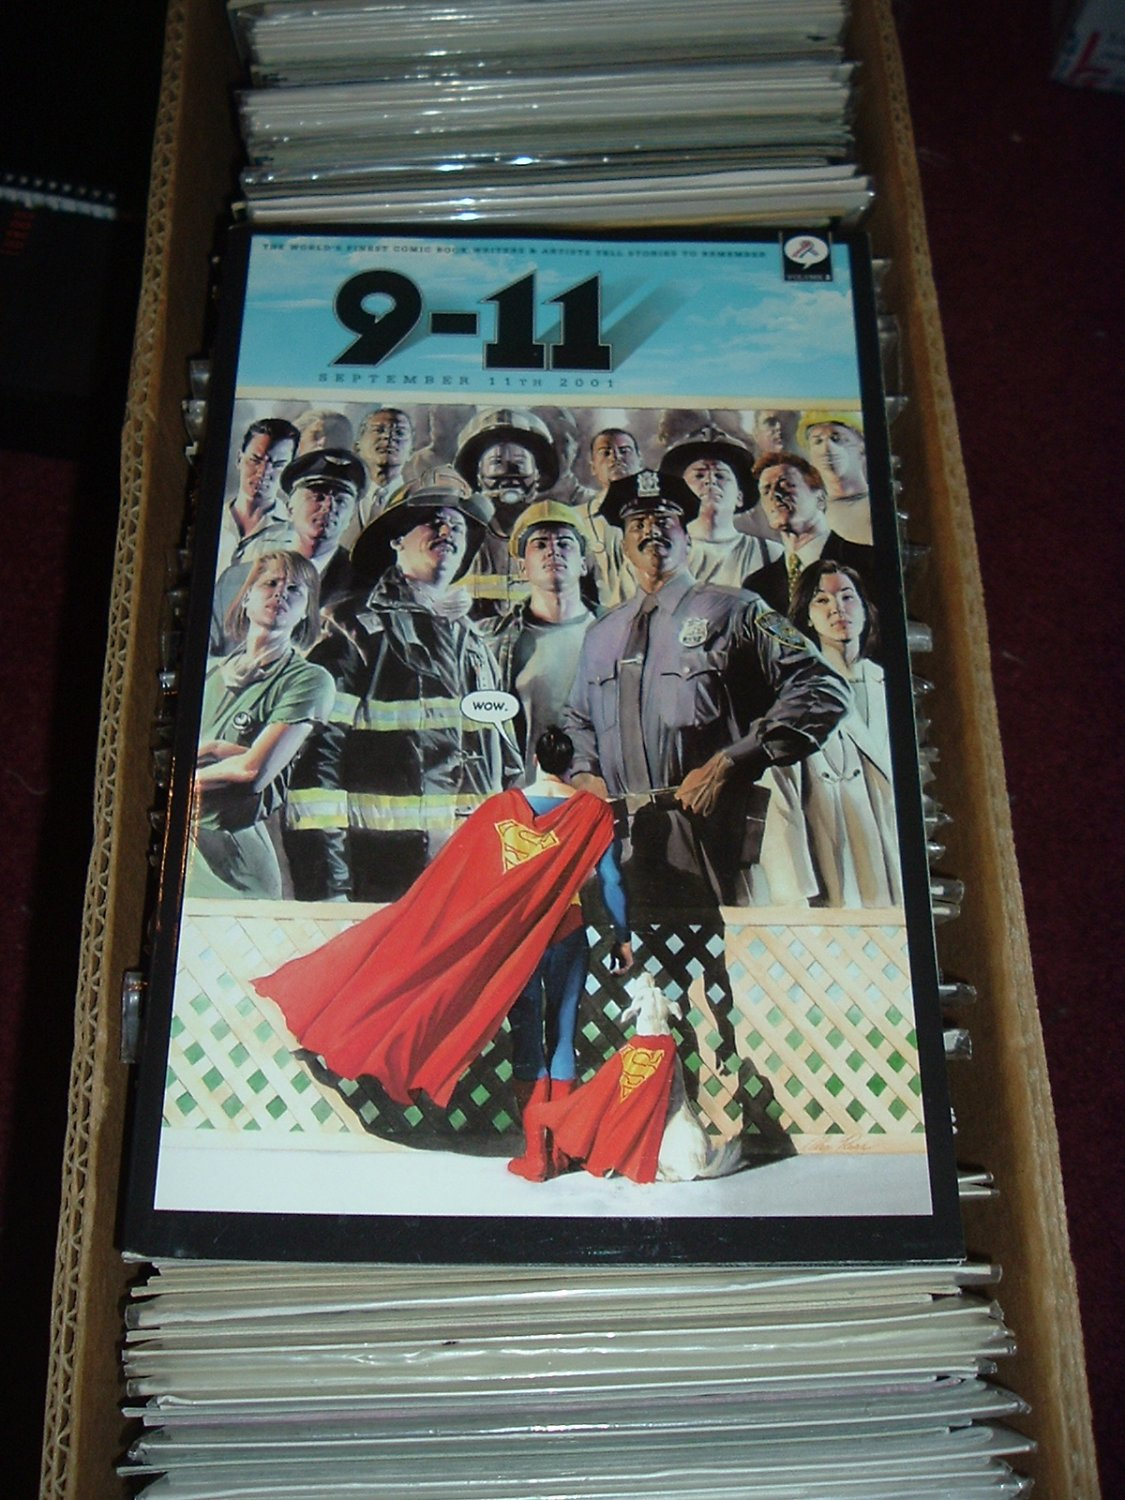 9-11 Volume 2: September 11th 2001 (DC Comics edition), SAVE $$$ with COMBINED SHIPPING